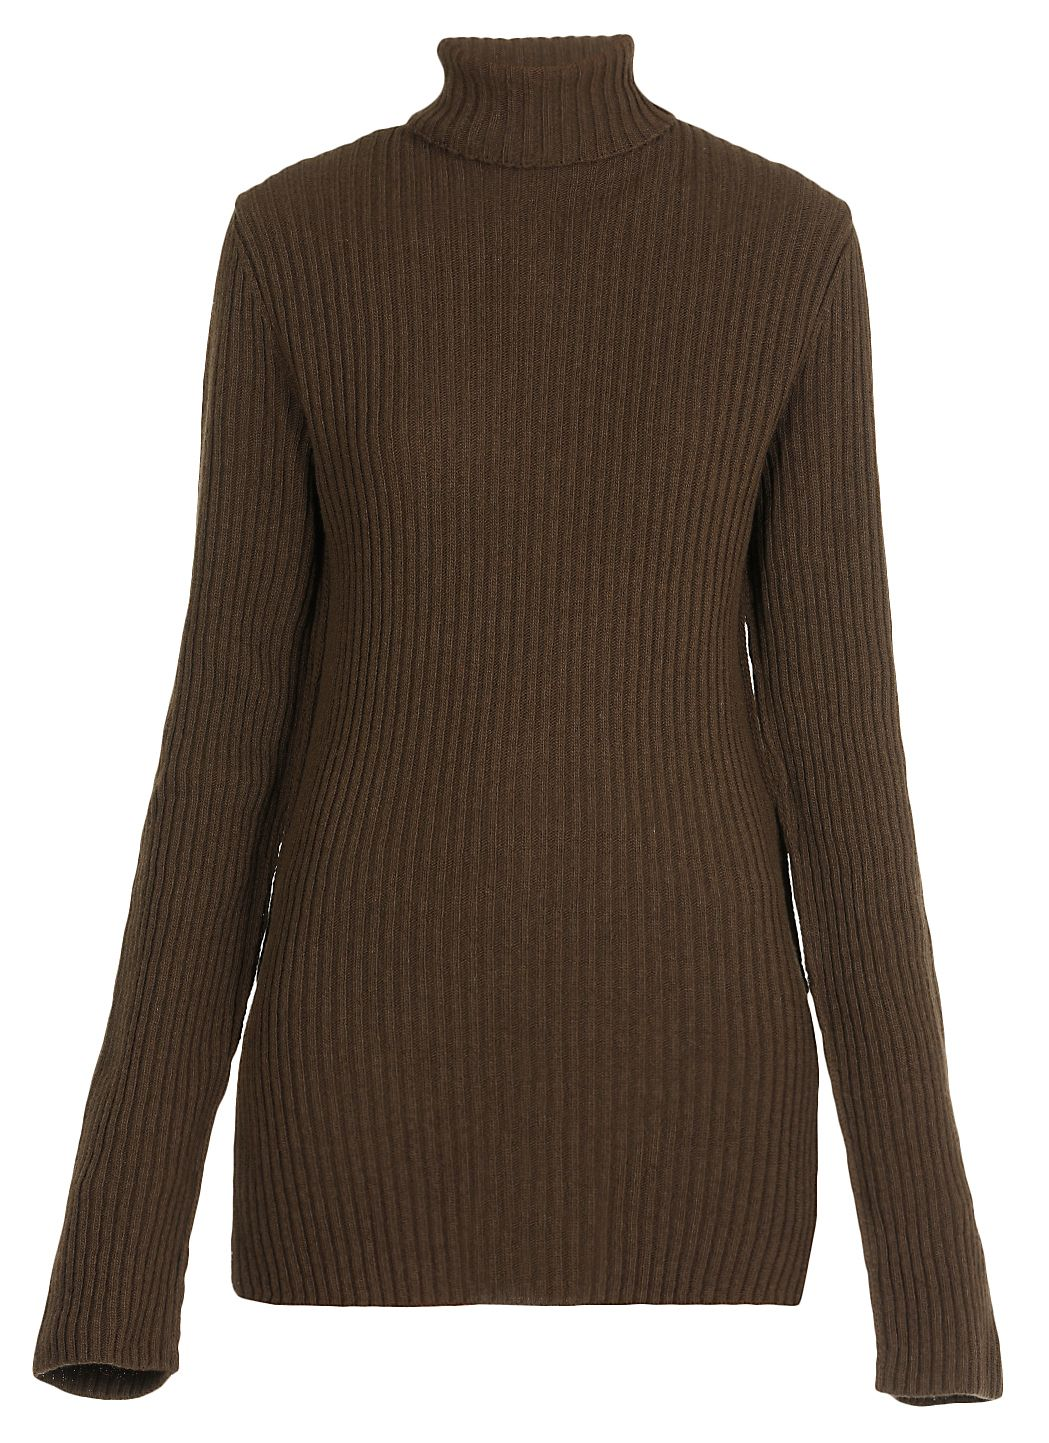 Turtle neckline wool sweater